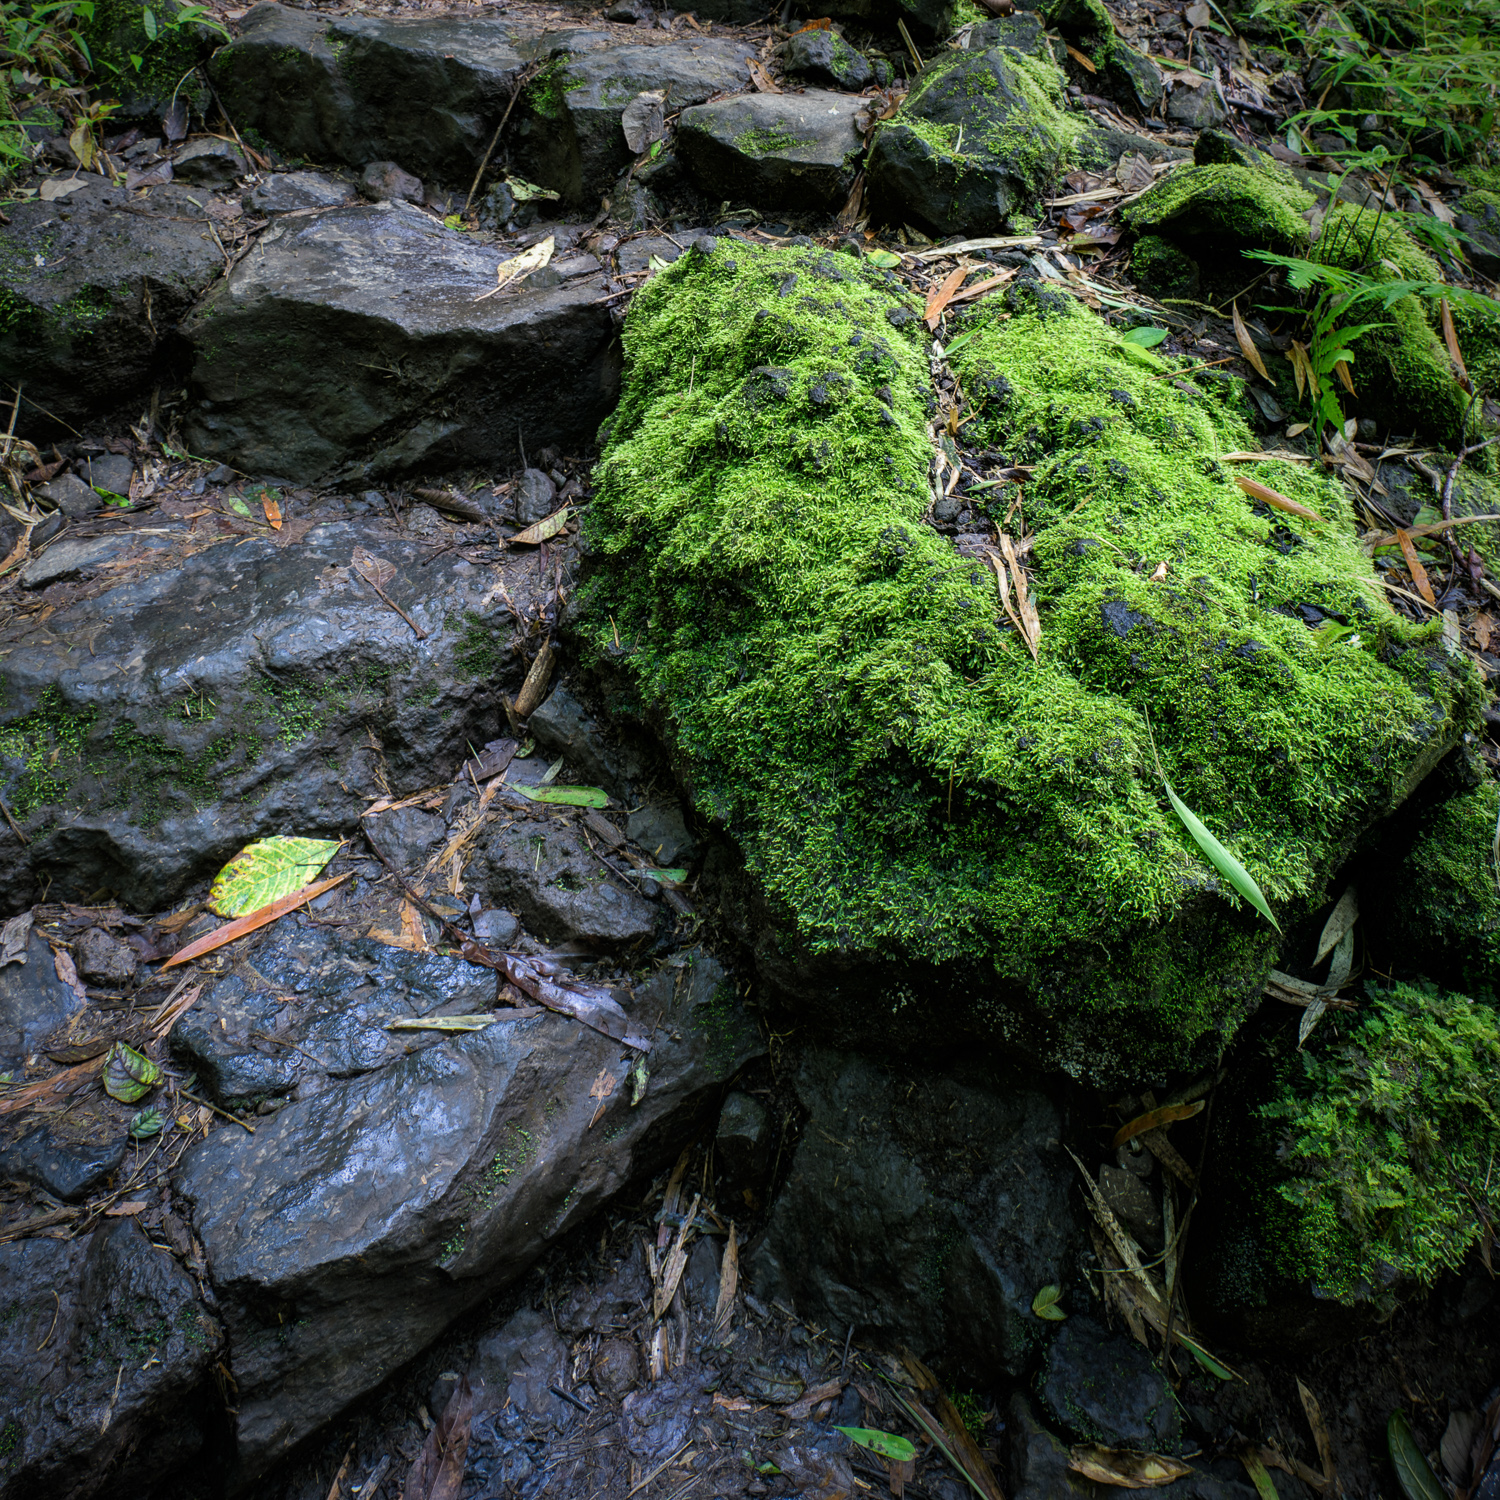 Mossy Rock at the Bamboo Forest